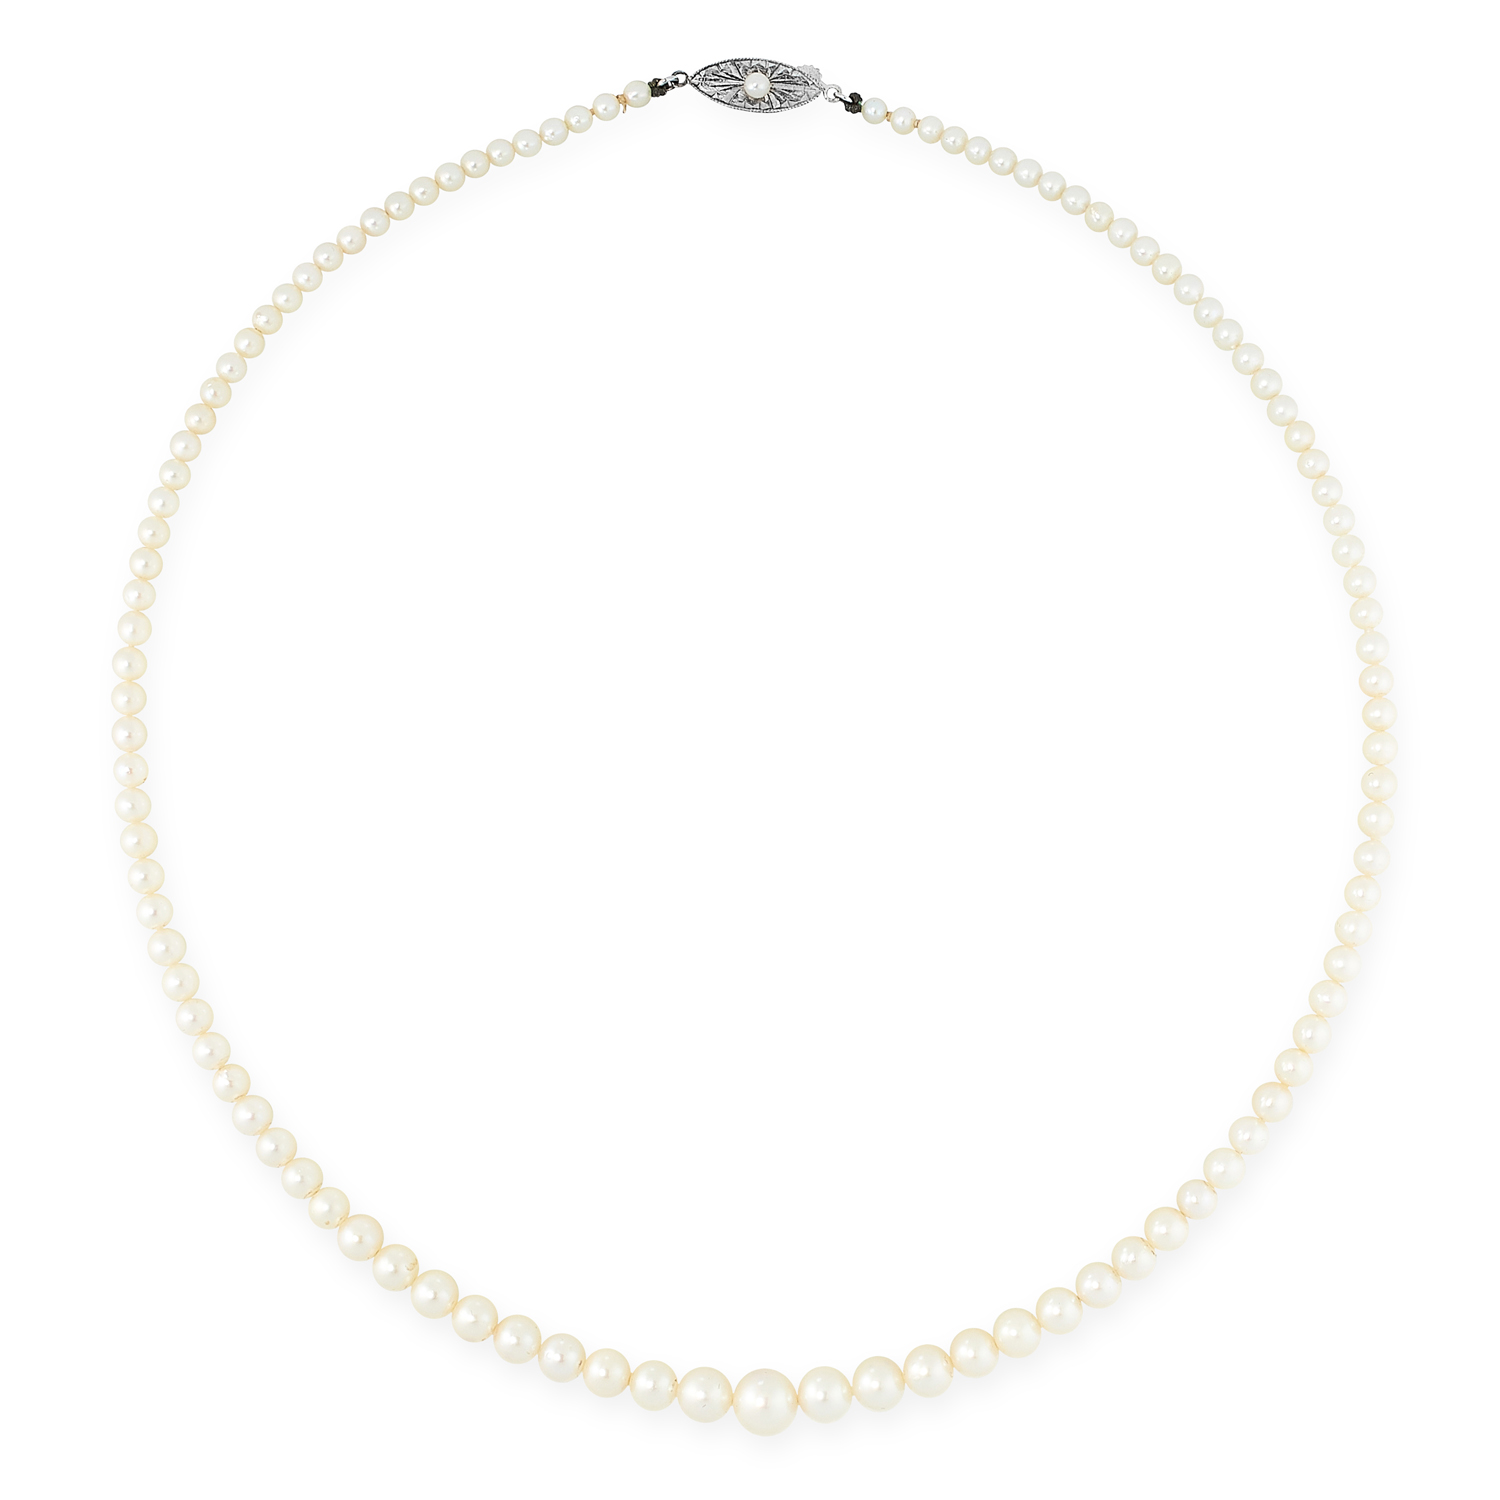 A PEARL NECKLACE comprising a single row of pearls ranging 7.3-3.1mm, on a pearl set clasp, 46.0cm /